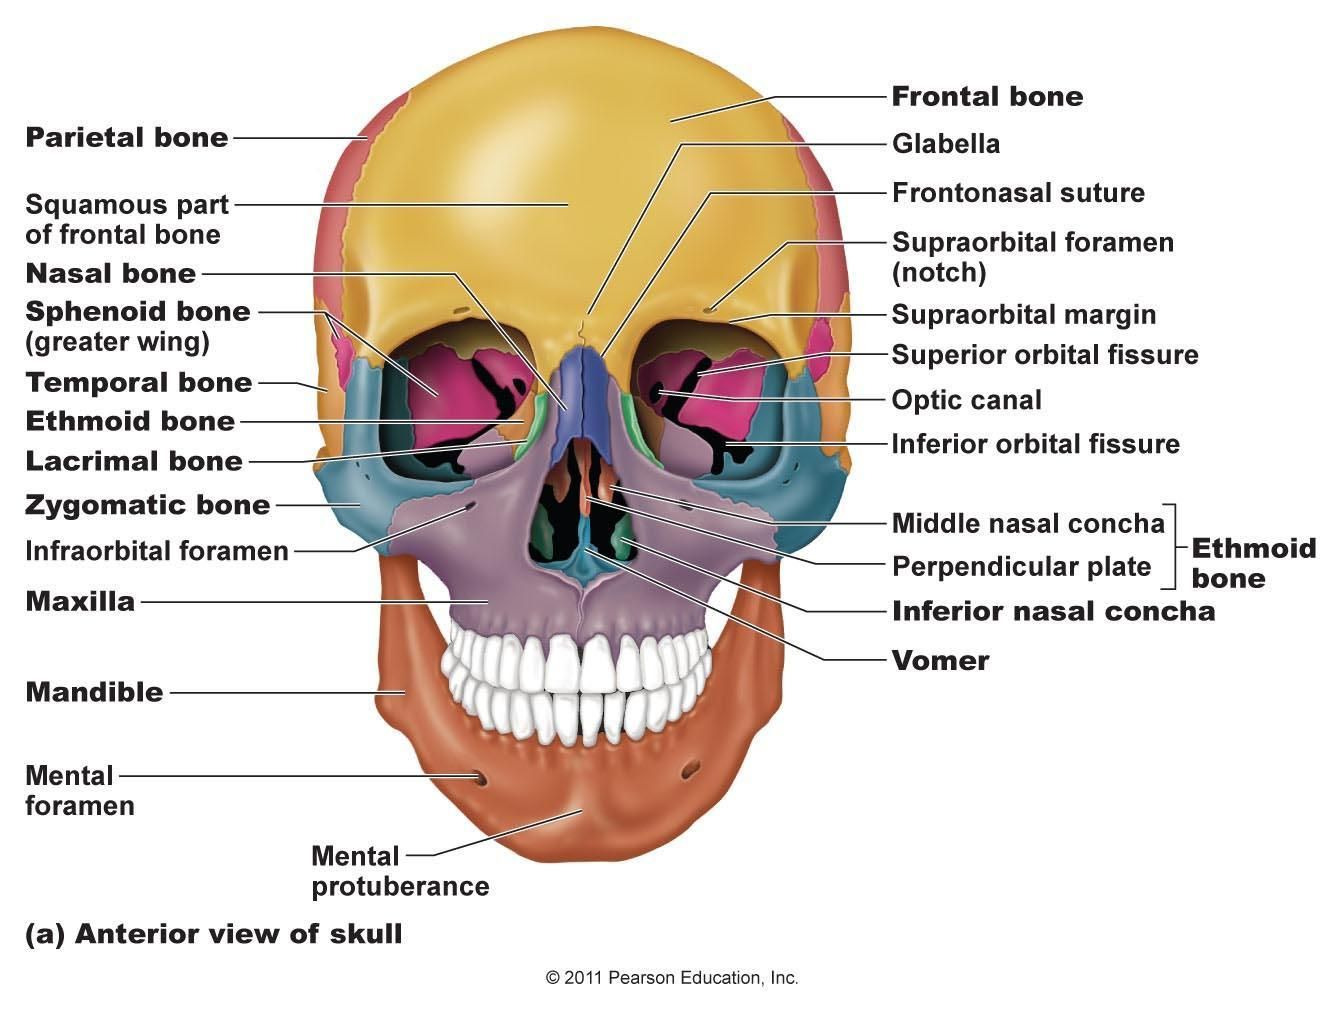 Study online flashcards and notes for Bones Axial Skeleton including ...